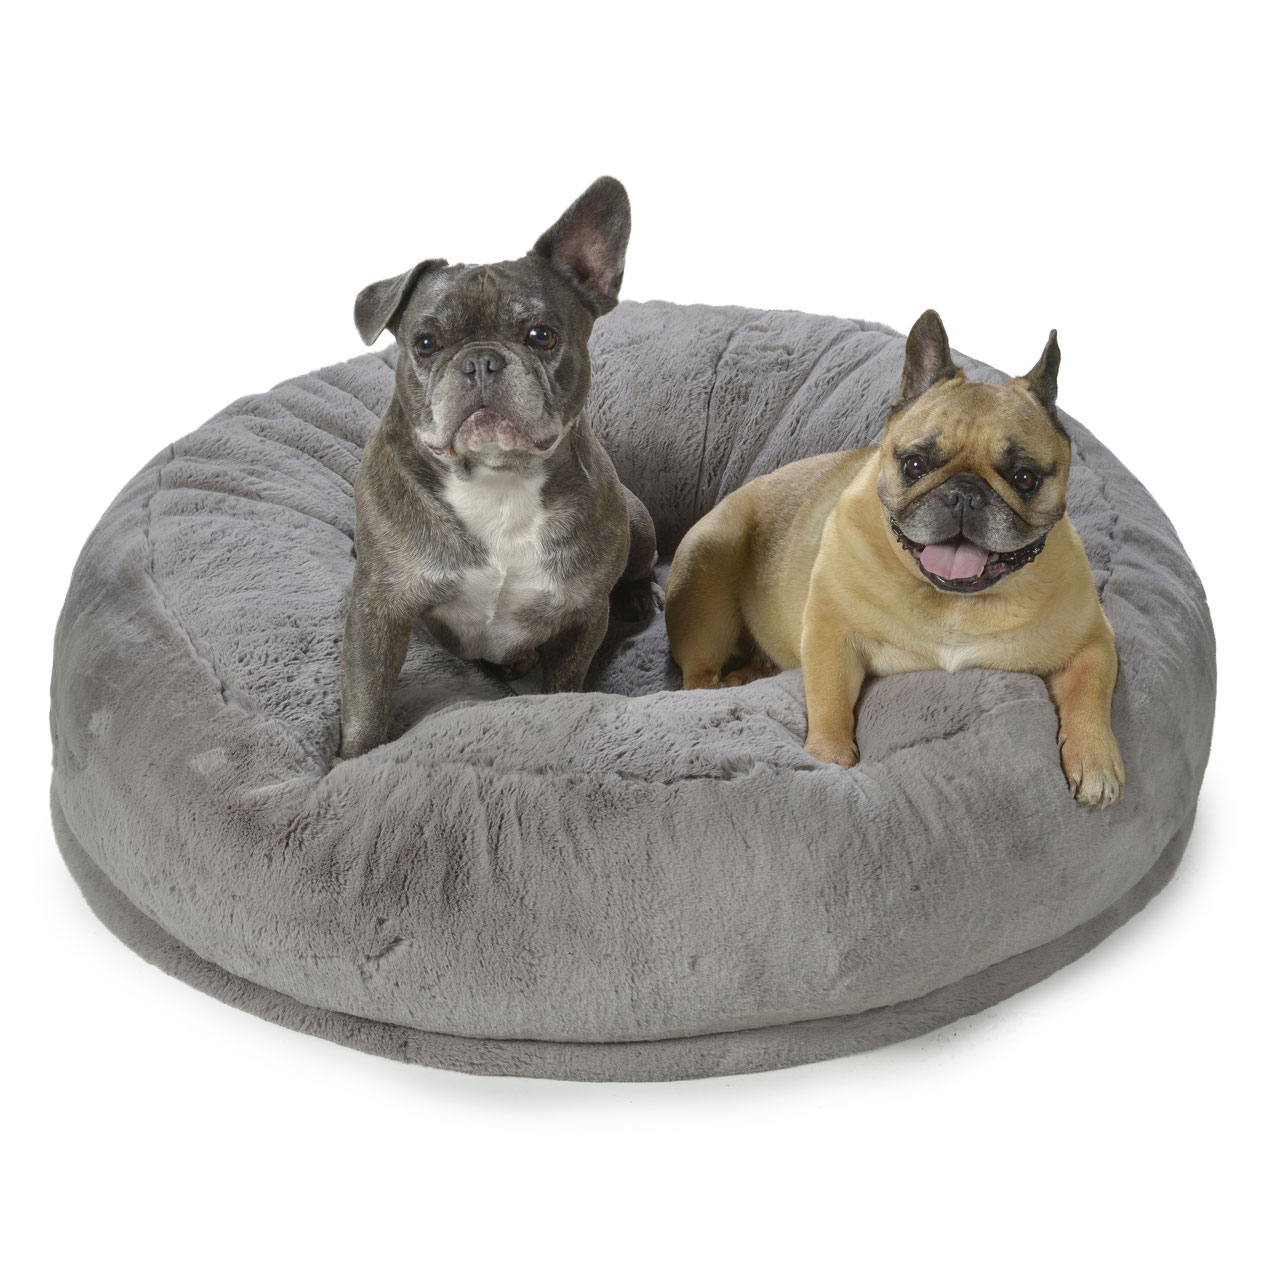 Full Size of Hundebett Flocke 125 Cm Orthopdisches Hyggebed Xxl Regal Tiefe 30 Breit Bett 120 60 50 25 Tief 40 80 Hoch Liegehöhe Sofa Sitzhöhe 55 20 Wohnzimmer Hundebett Flocke 125 Cm